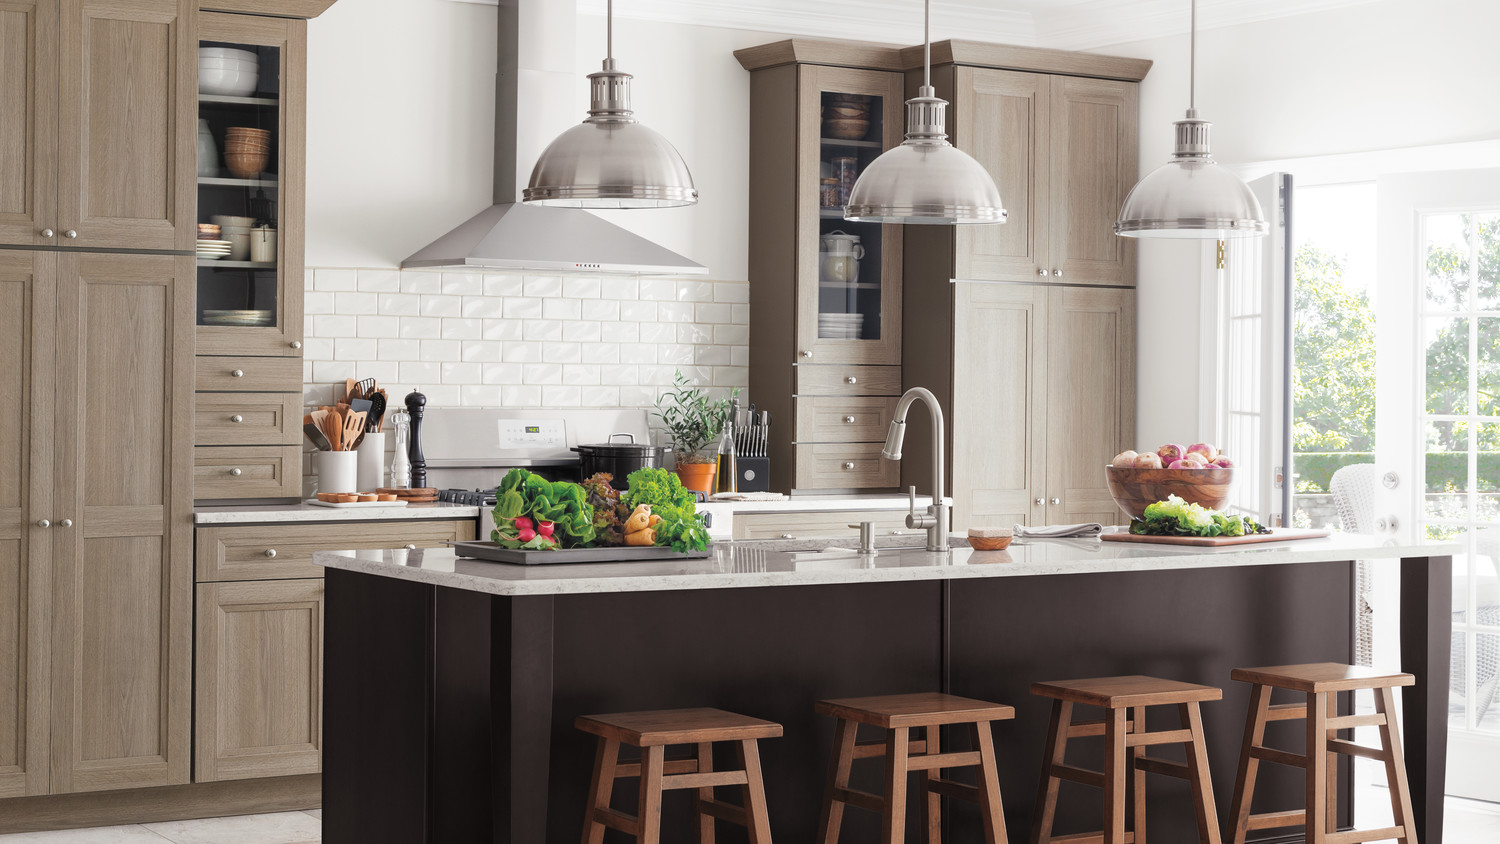 Kitchen Designs: Video: Martha Stewart Shares Her Kitchen Design